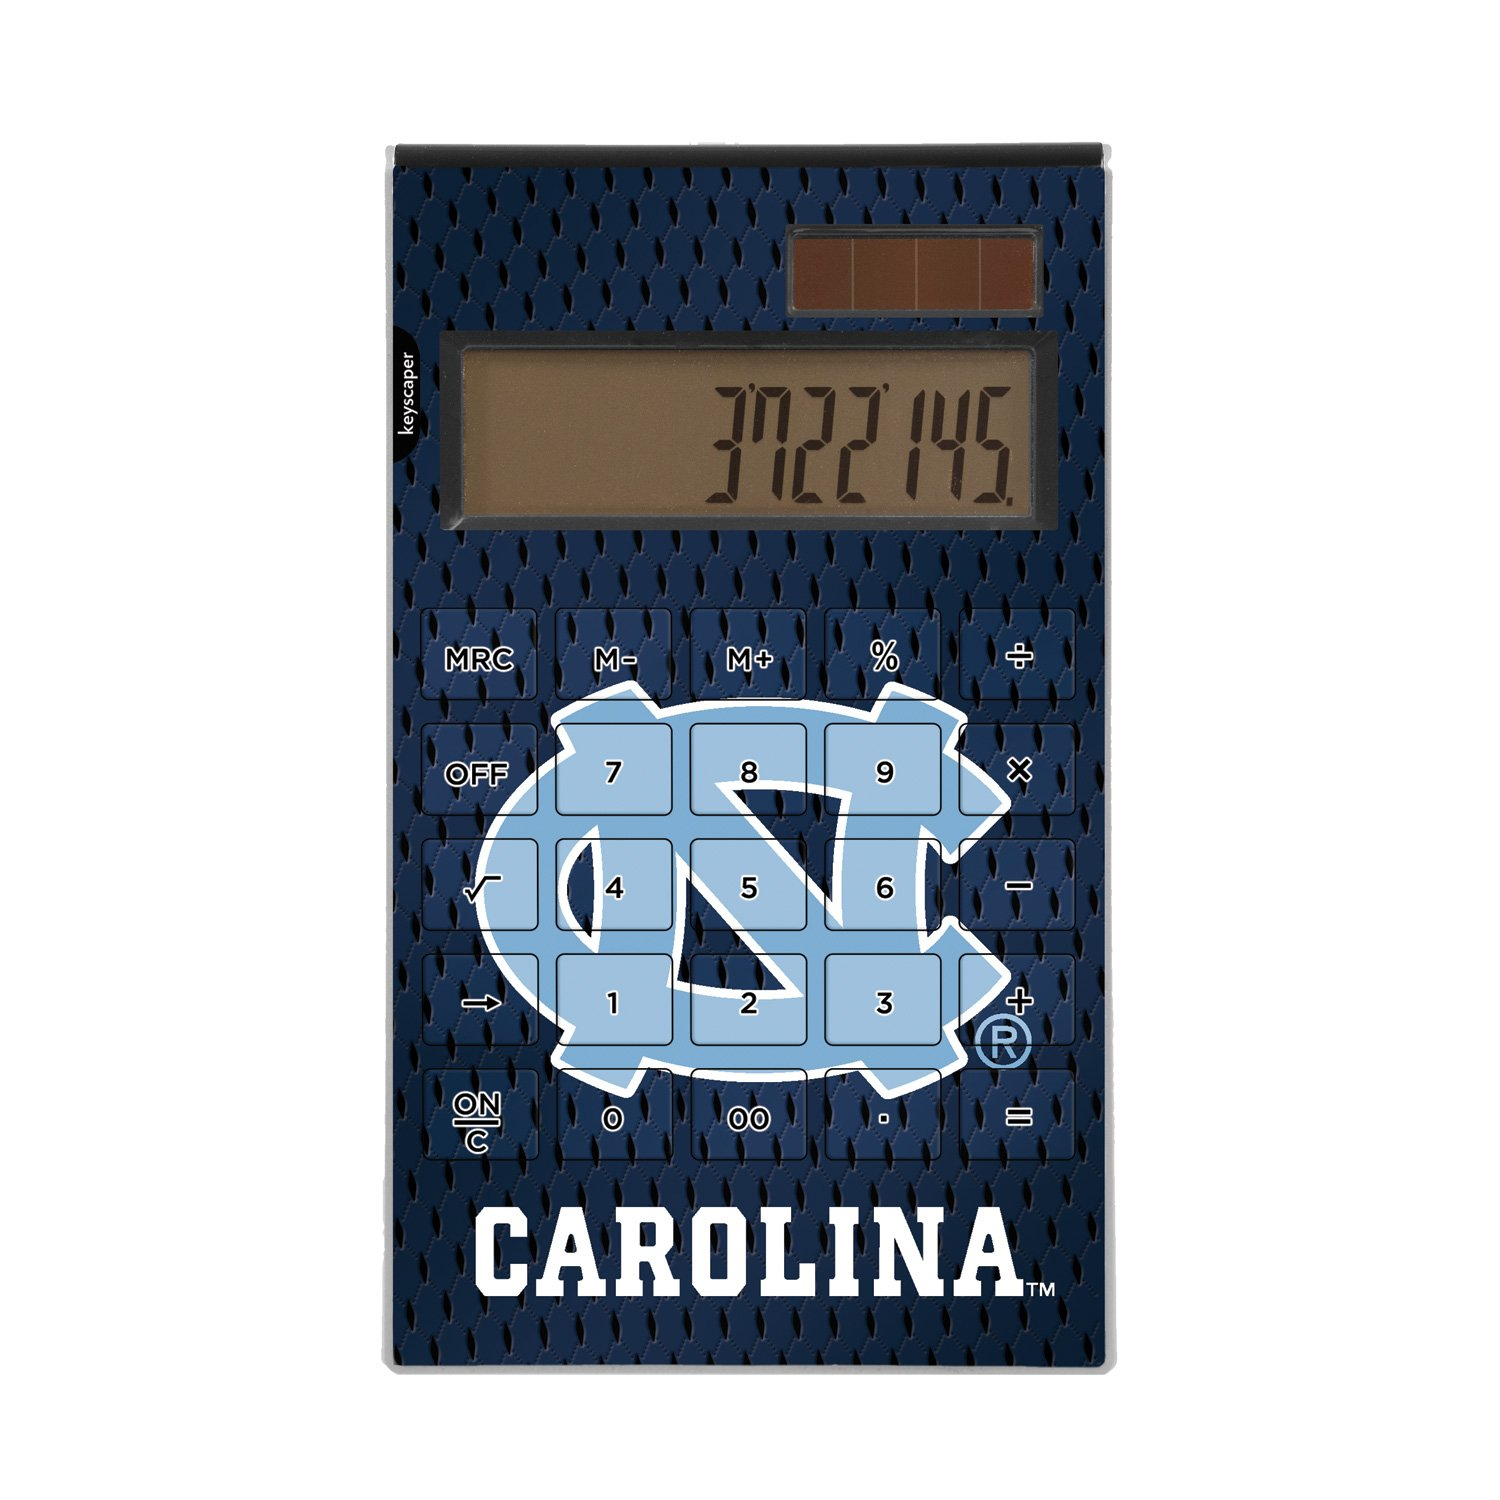 North Carolina Tar Heels Desktop Calculator officially licensed by the University of North Carolina Full Size Large Button Solar by keyscaper® by Keyscaper